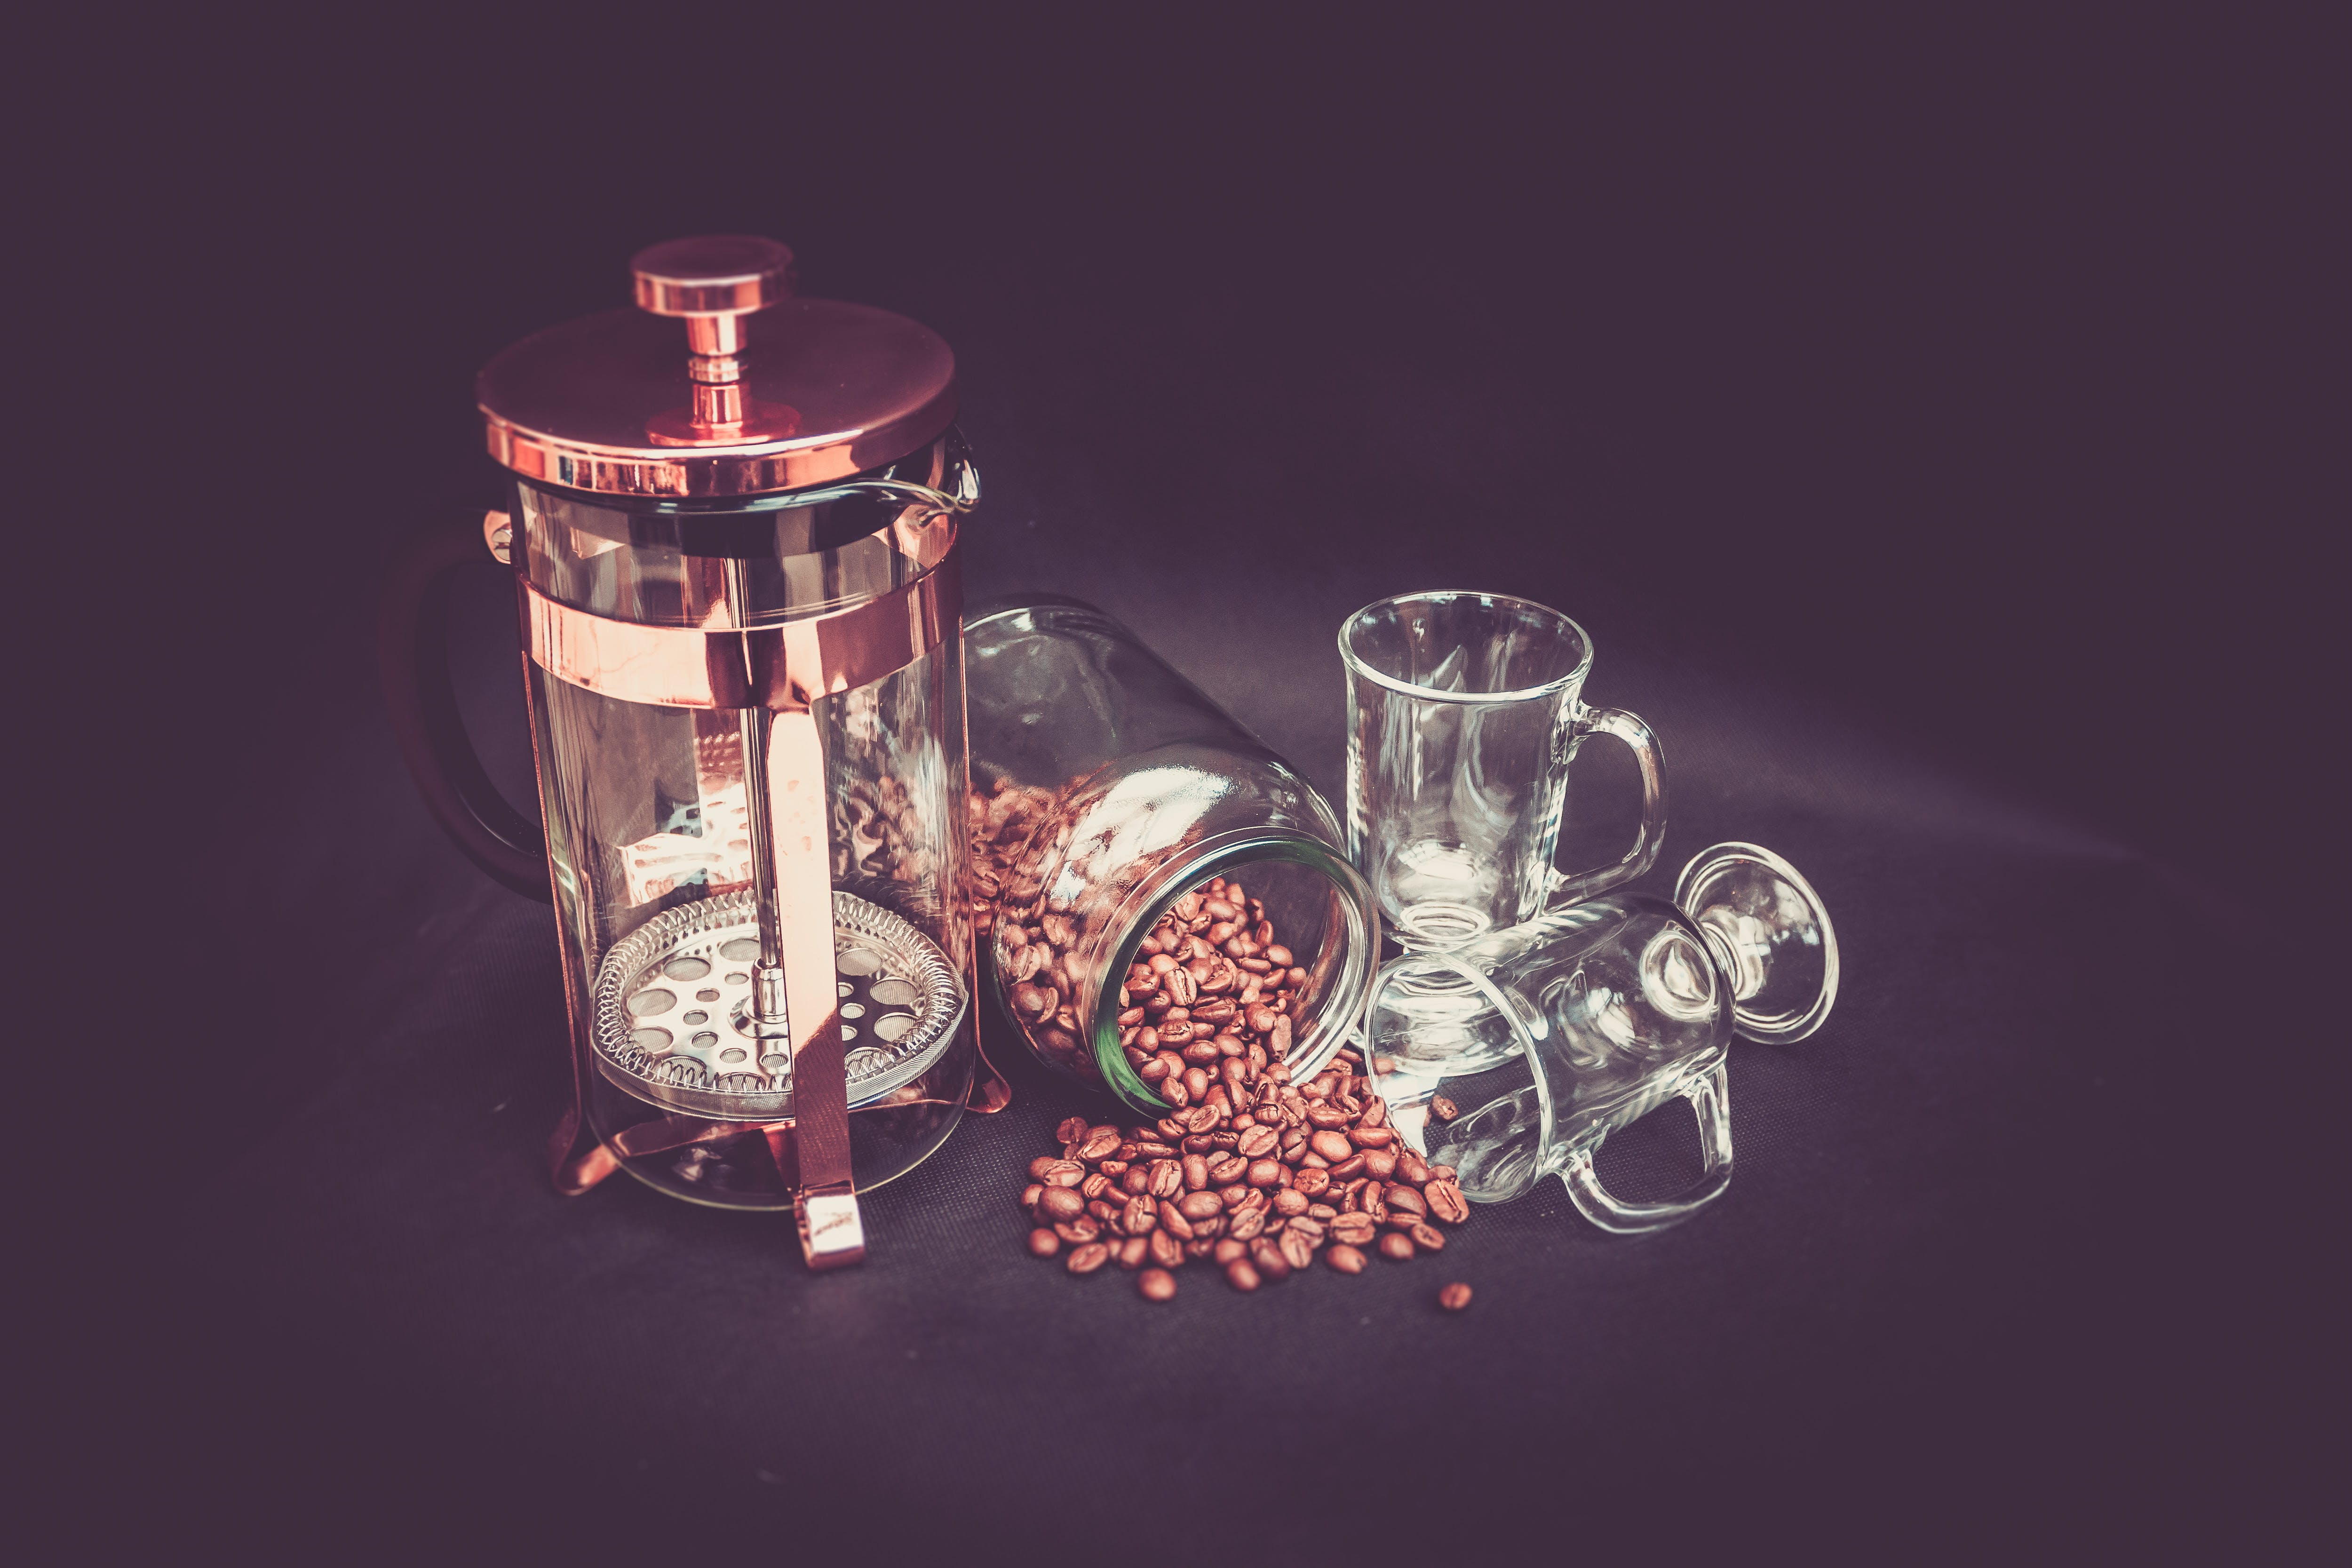 Photograhy of Brown Beans, Clear Glass Mug, and Brass Coffee Grinder